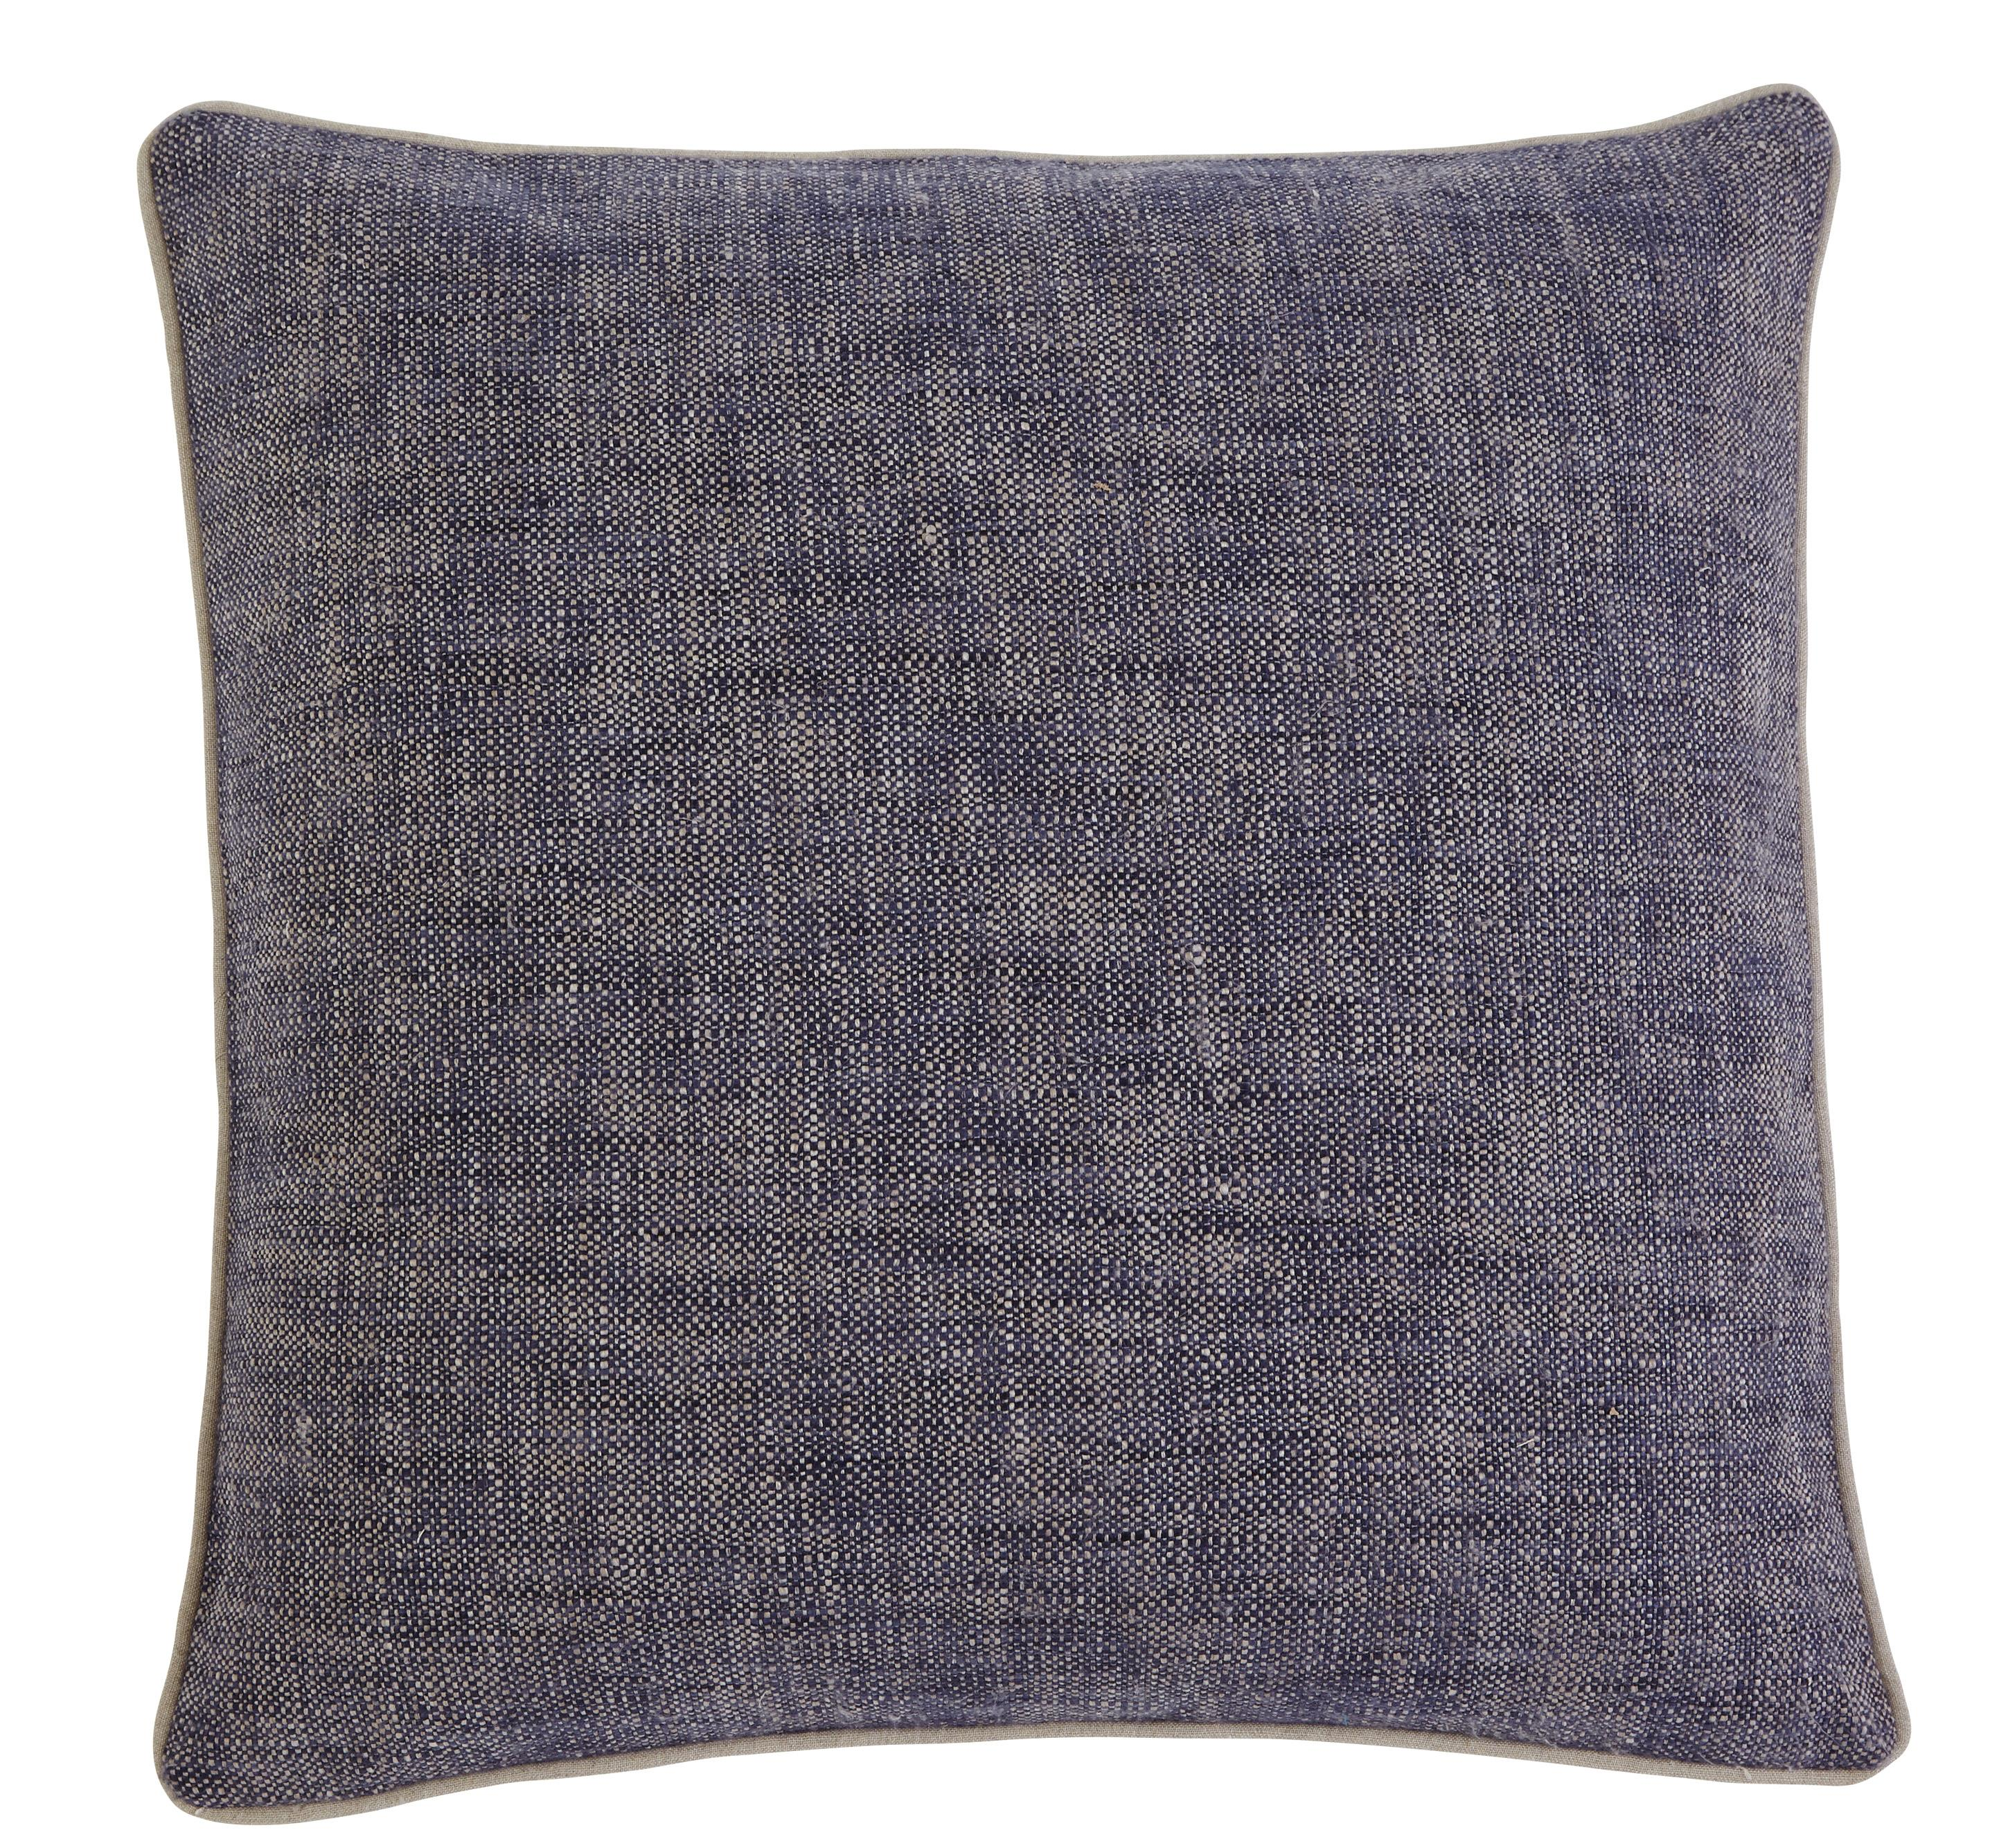 Signature Design by Ashley Pillows Textured - Navy Pillow Cover - Item Number: A1000355P